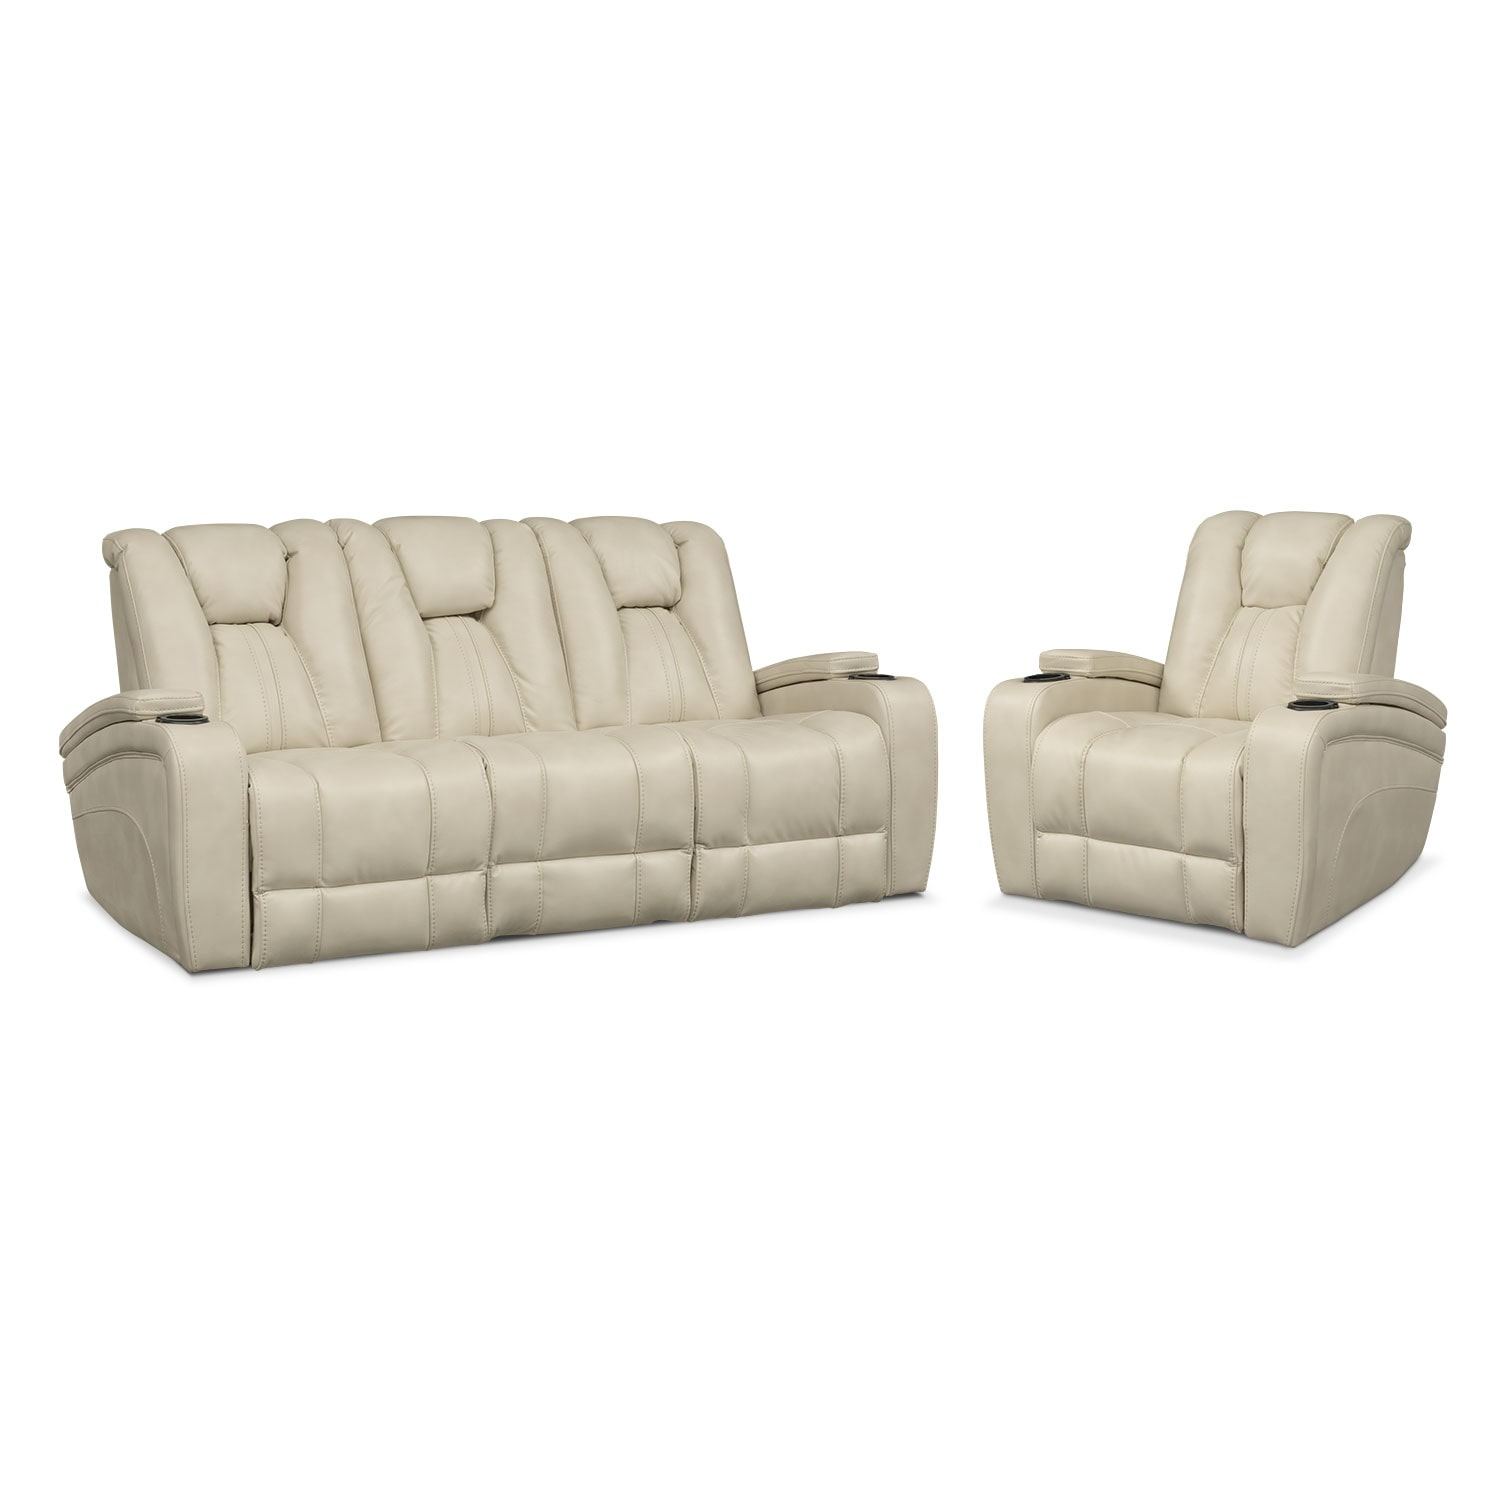 Pulsar Dual Power Reclining Sofa and Power Recliner Set - Cream